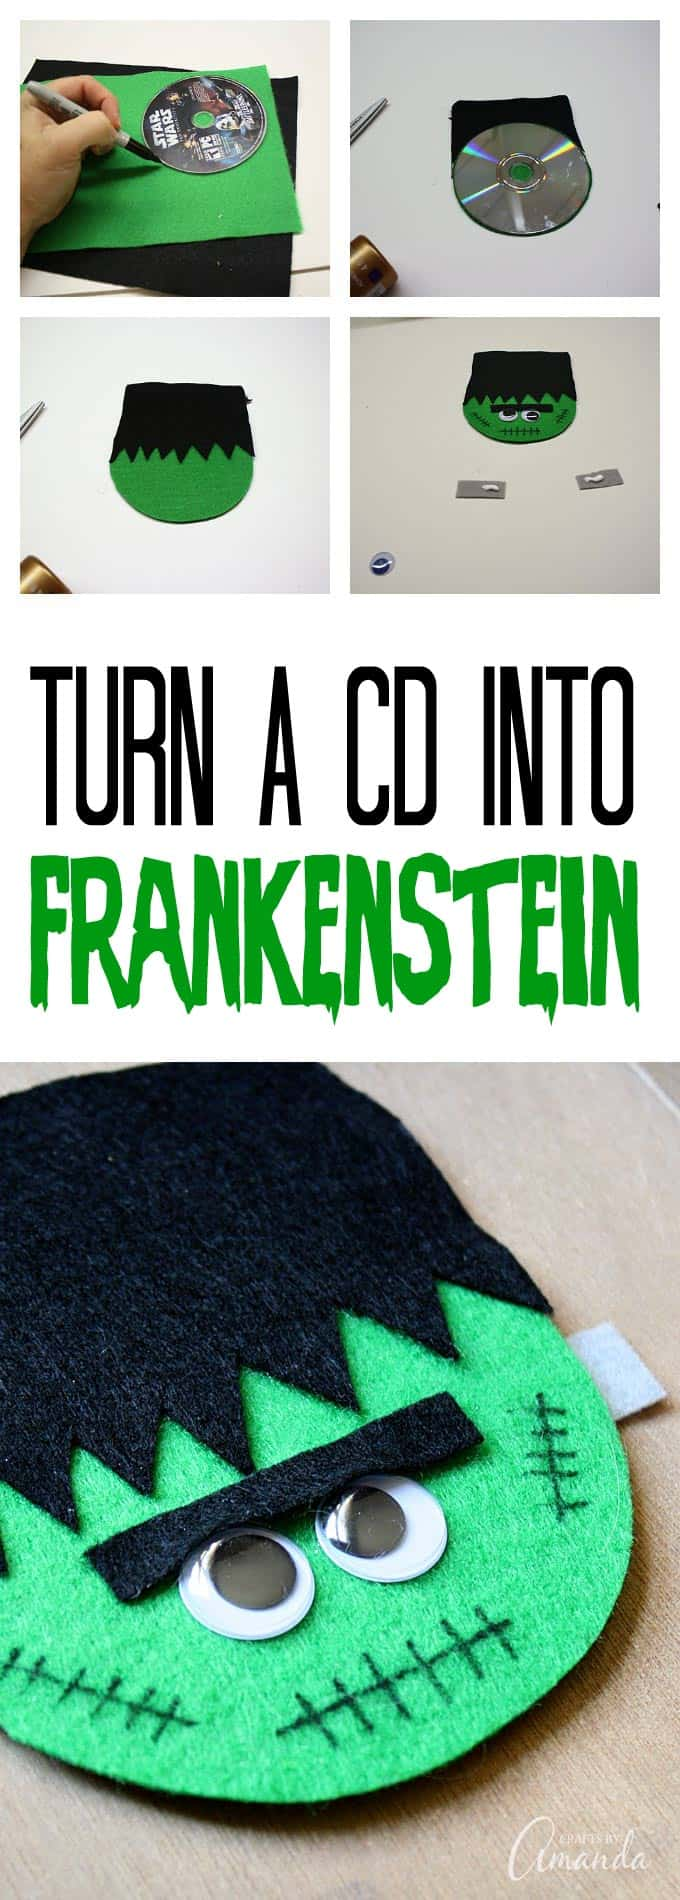 Recycle an old disc into some Halloween fun with this CD Frankenstein craft! This would make the perfect make & take for a Halloween party! All you need is an old CD, googly eyes, a marker and some felt (or construction paper)!